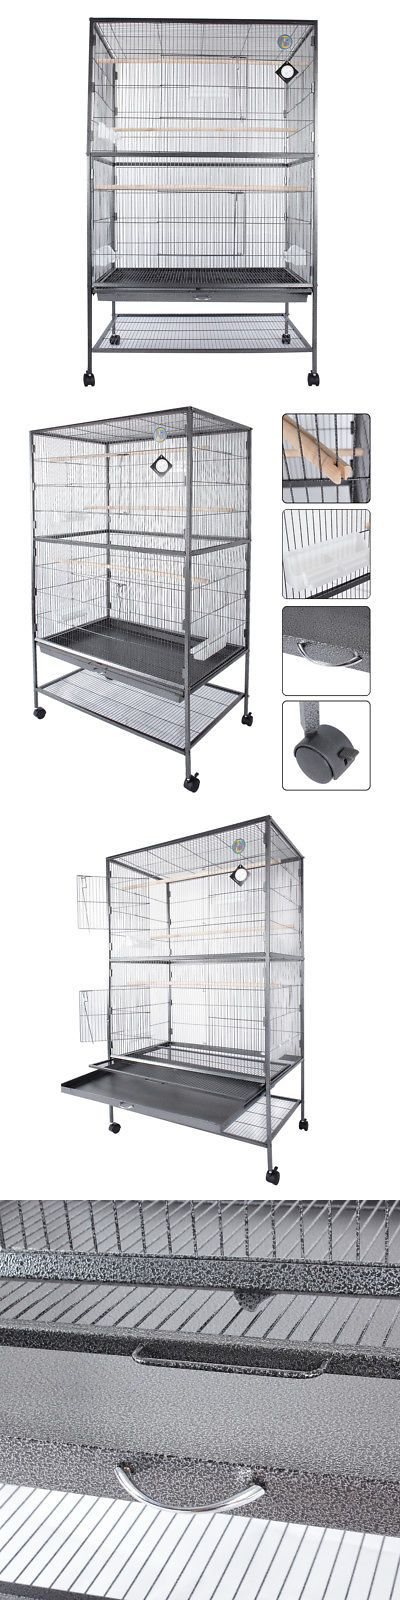 Cages 46289: New 60 Inch Large Bird Cage Parrot Finch Macaw Cockatoo Canary Pet Perch Grate -> BUY IT NOW ONLY: $75.99 on eBay!